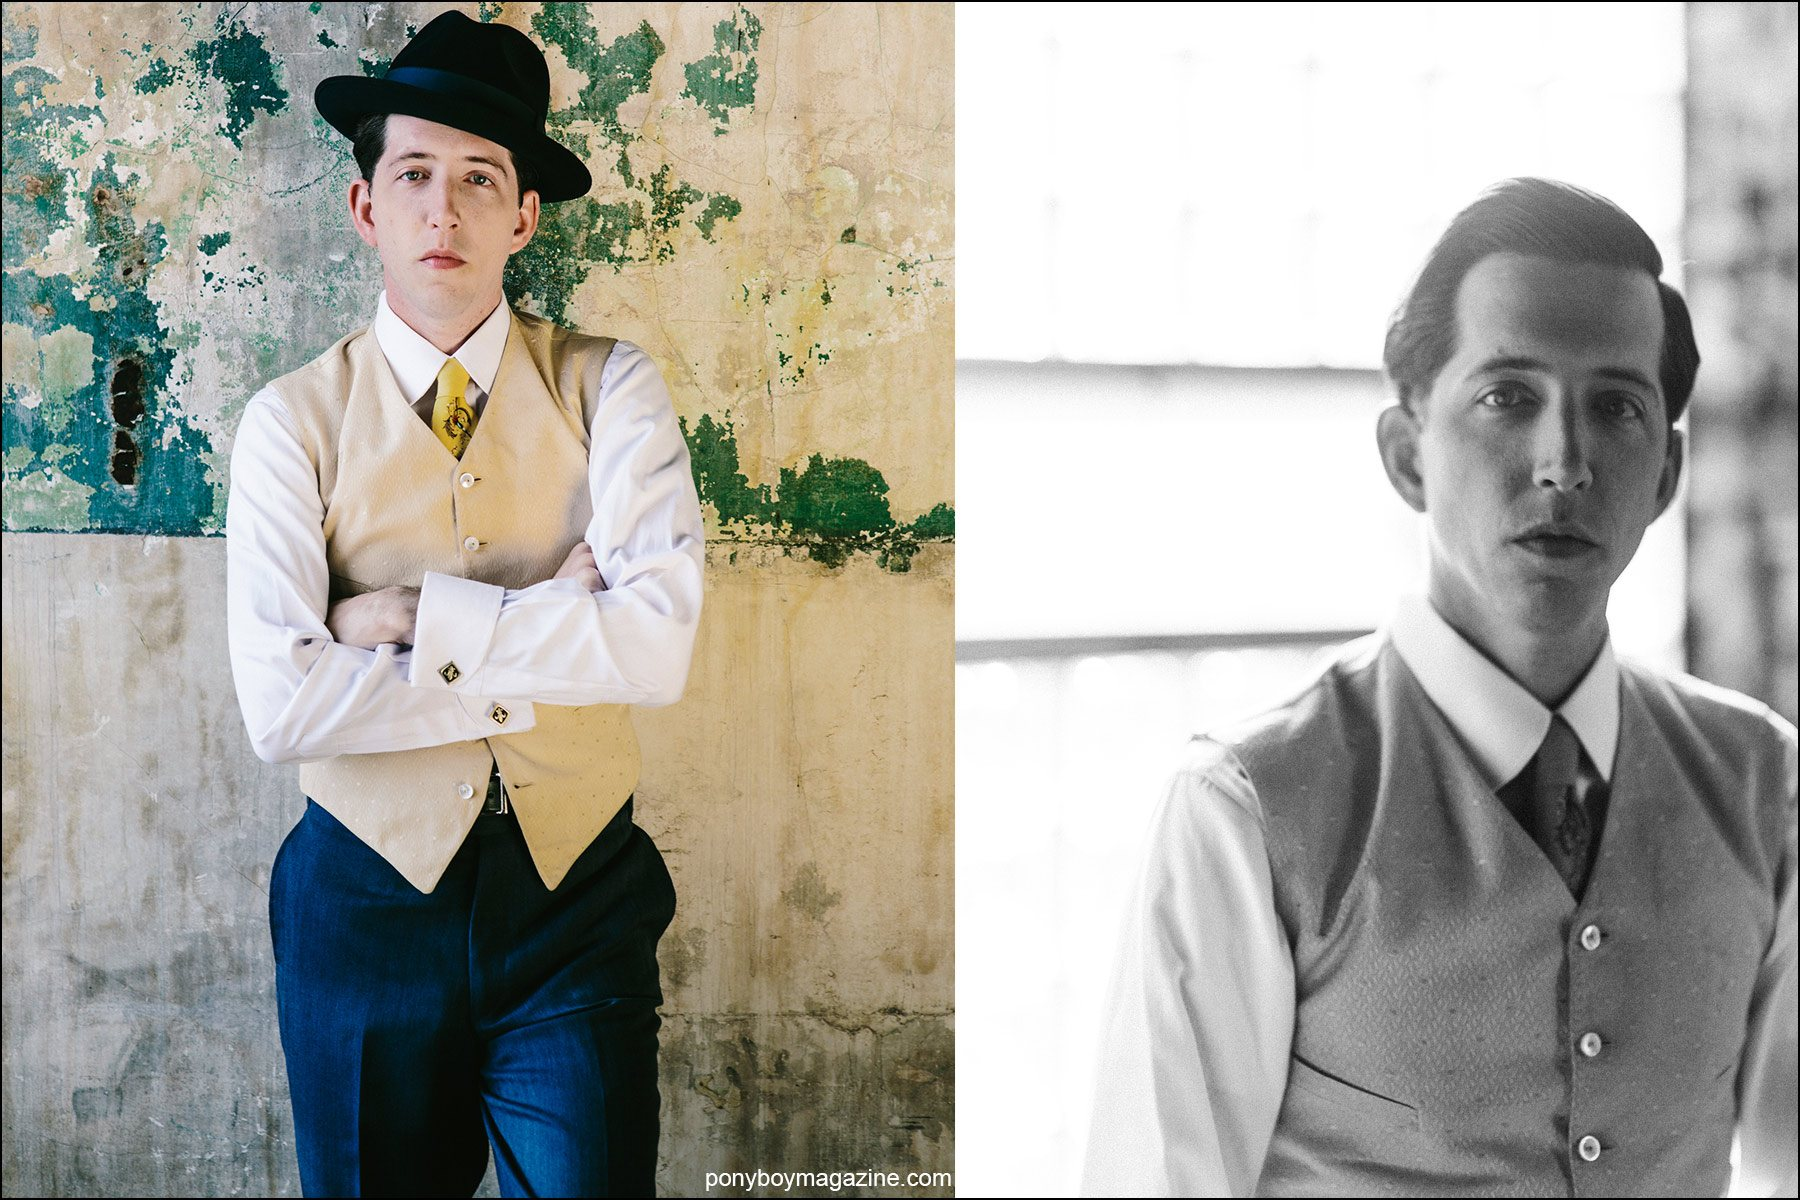 Portraits of musician Pokey LaFarge by Joshua Black Wilkins. Ponyboy magazine NY.